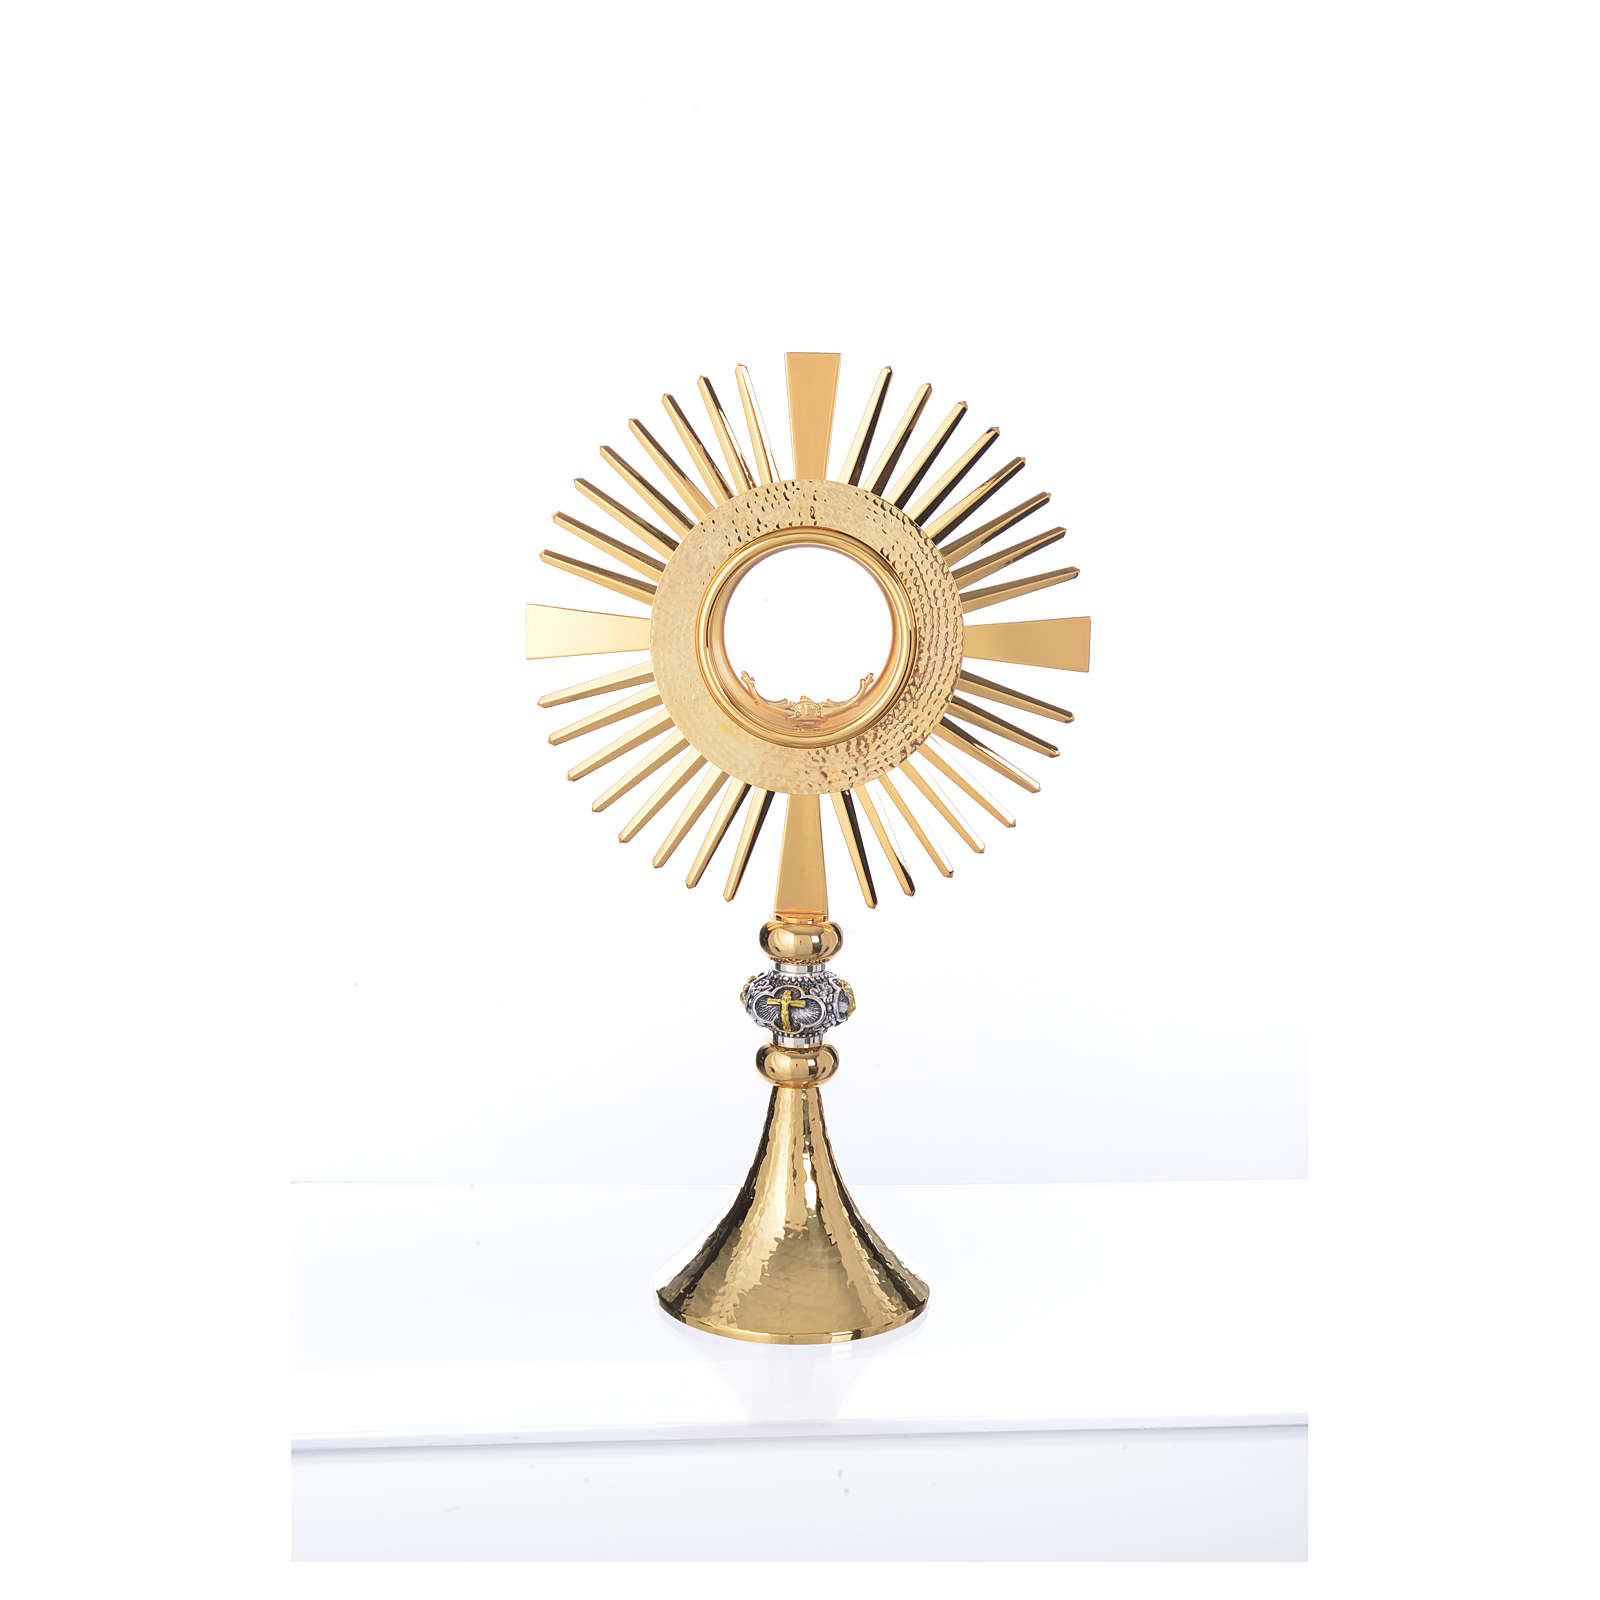 Monstrance hammered gold-plated brass 4